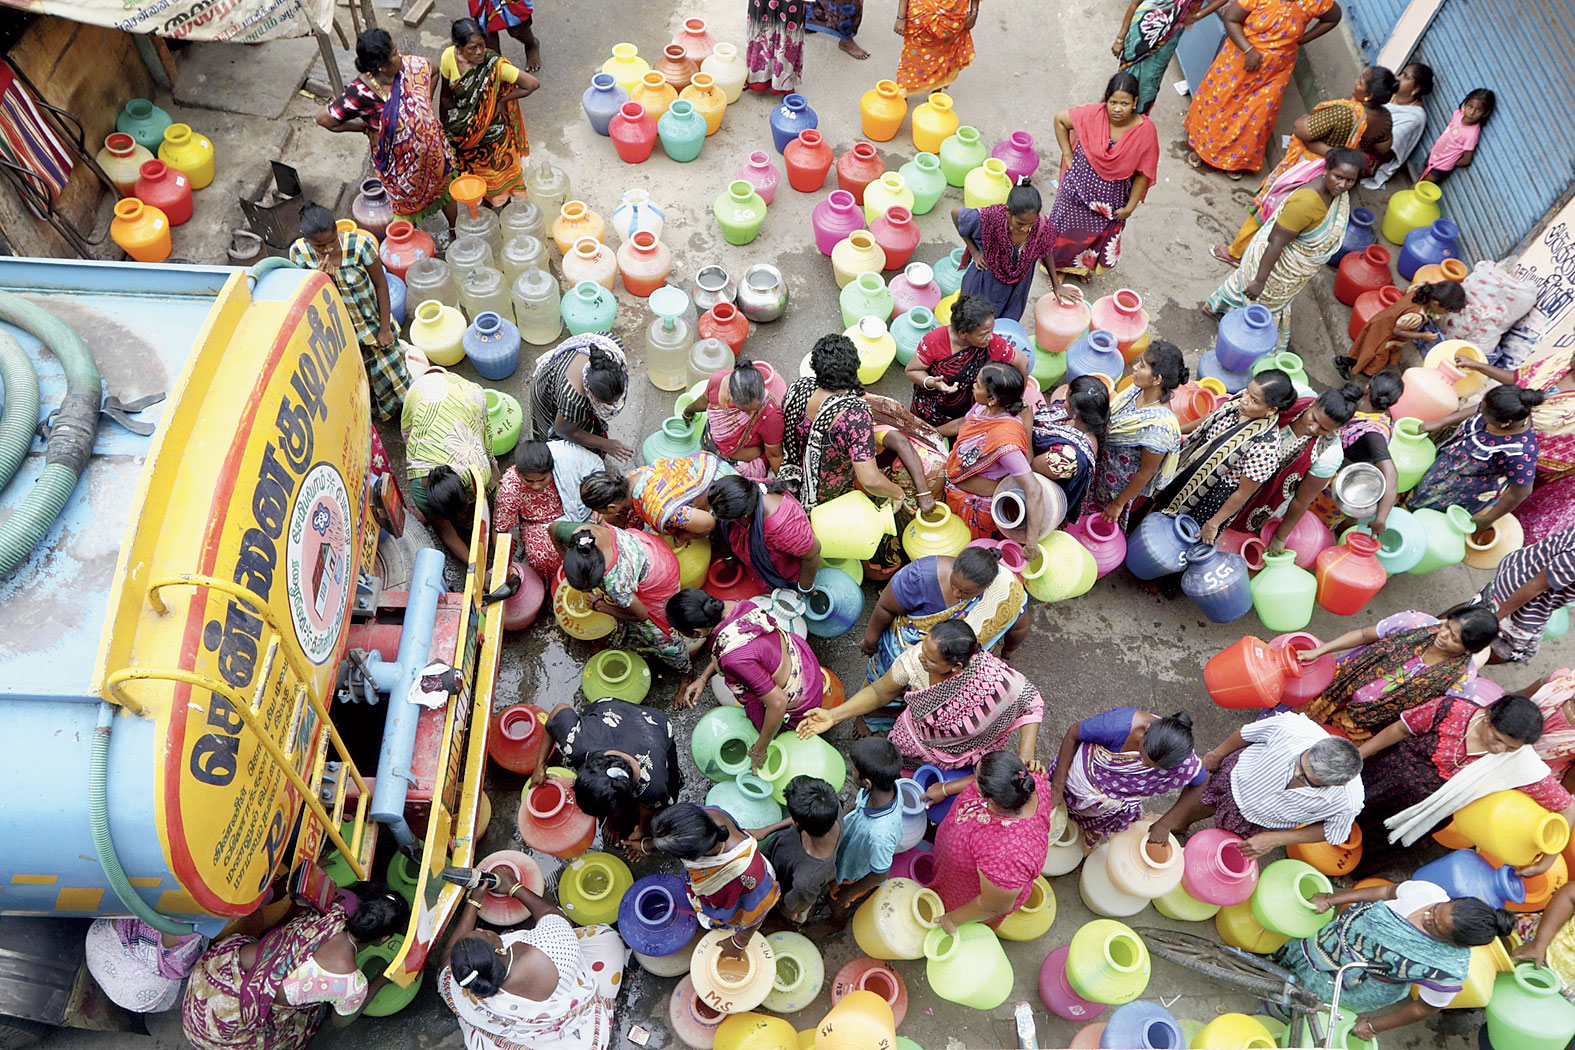 Residents could be seen crowded around water tankers in temperatures of over 40°C, holding buckets as media reported scuffles